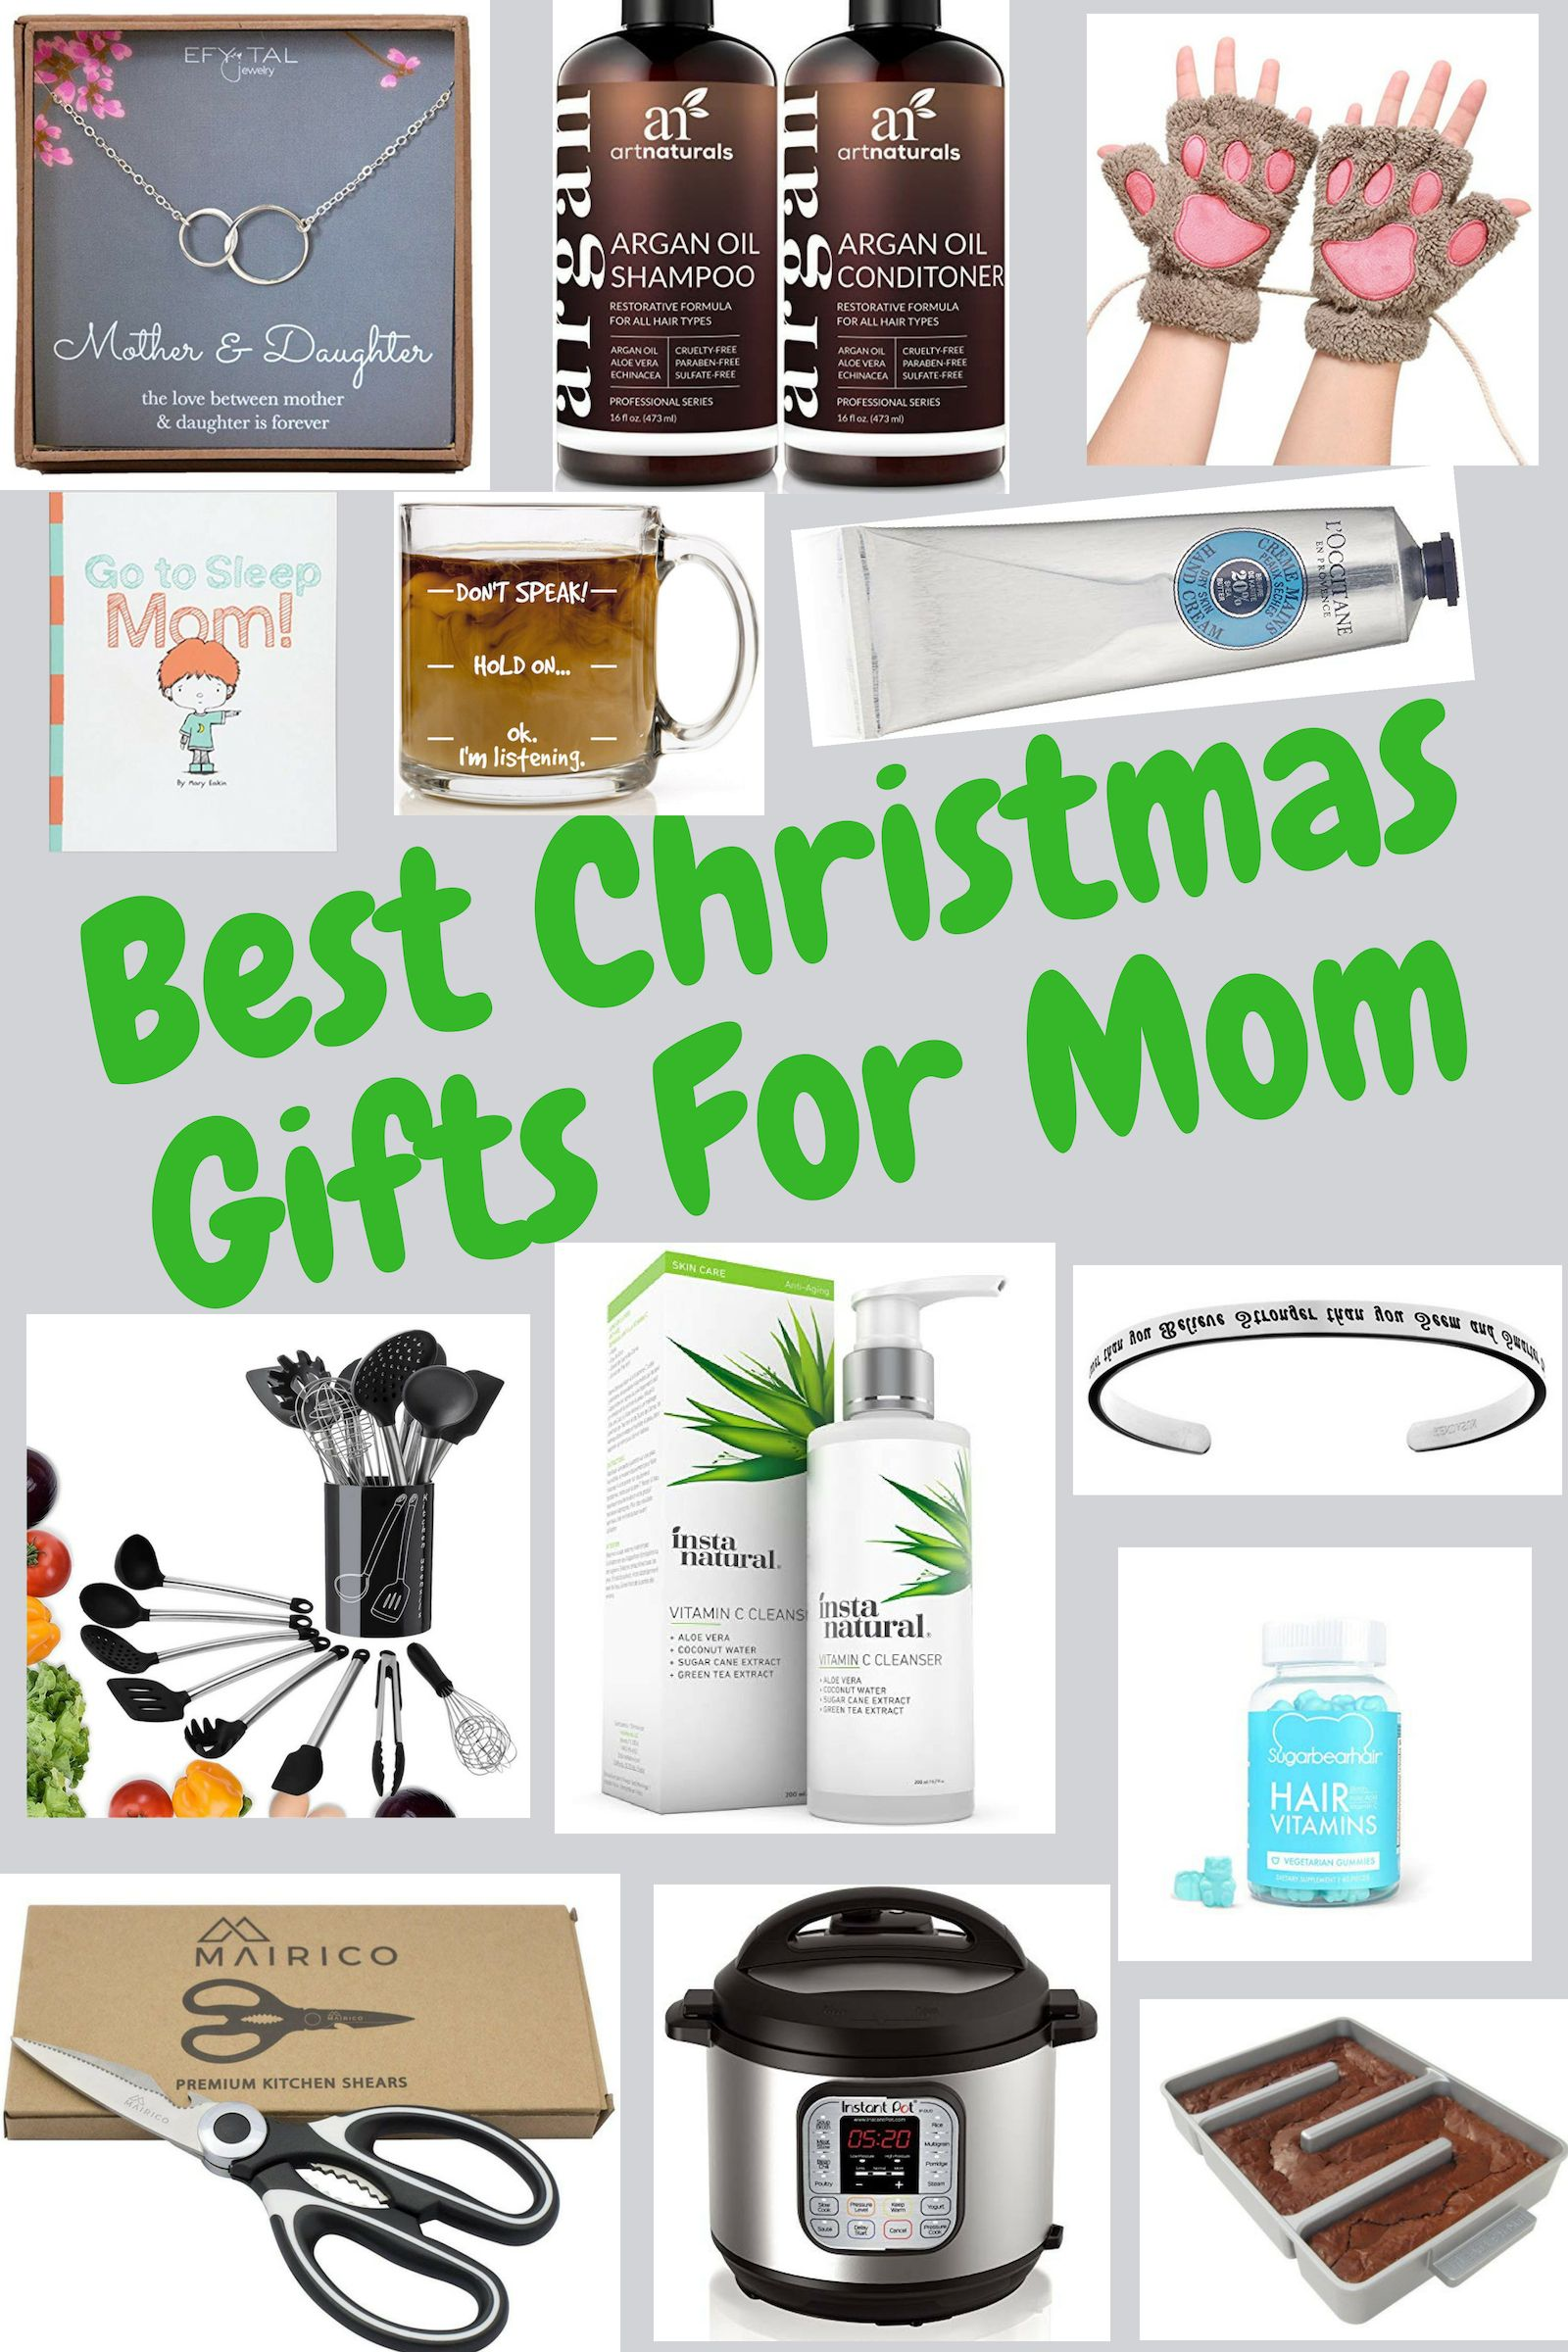 143 Best Christmas Gifts For Everyone | Christmas Gifts For Mom ...